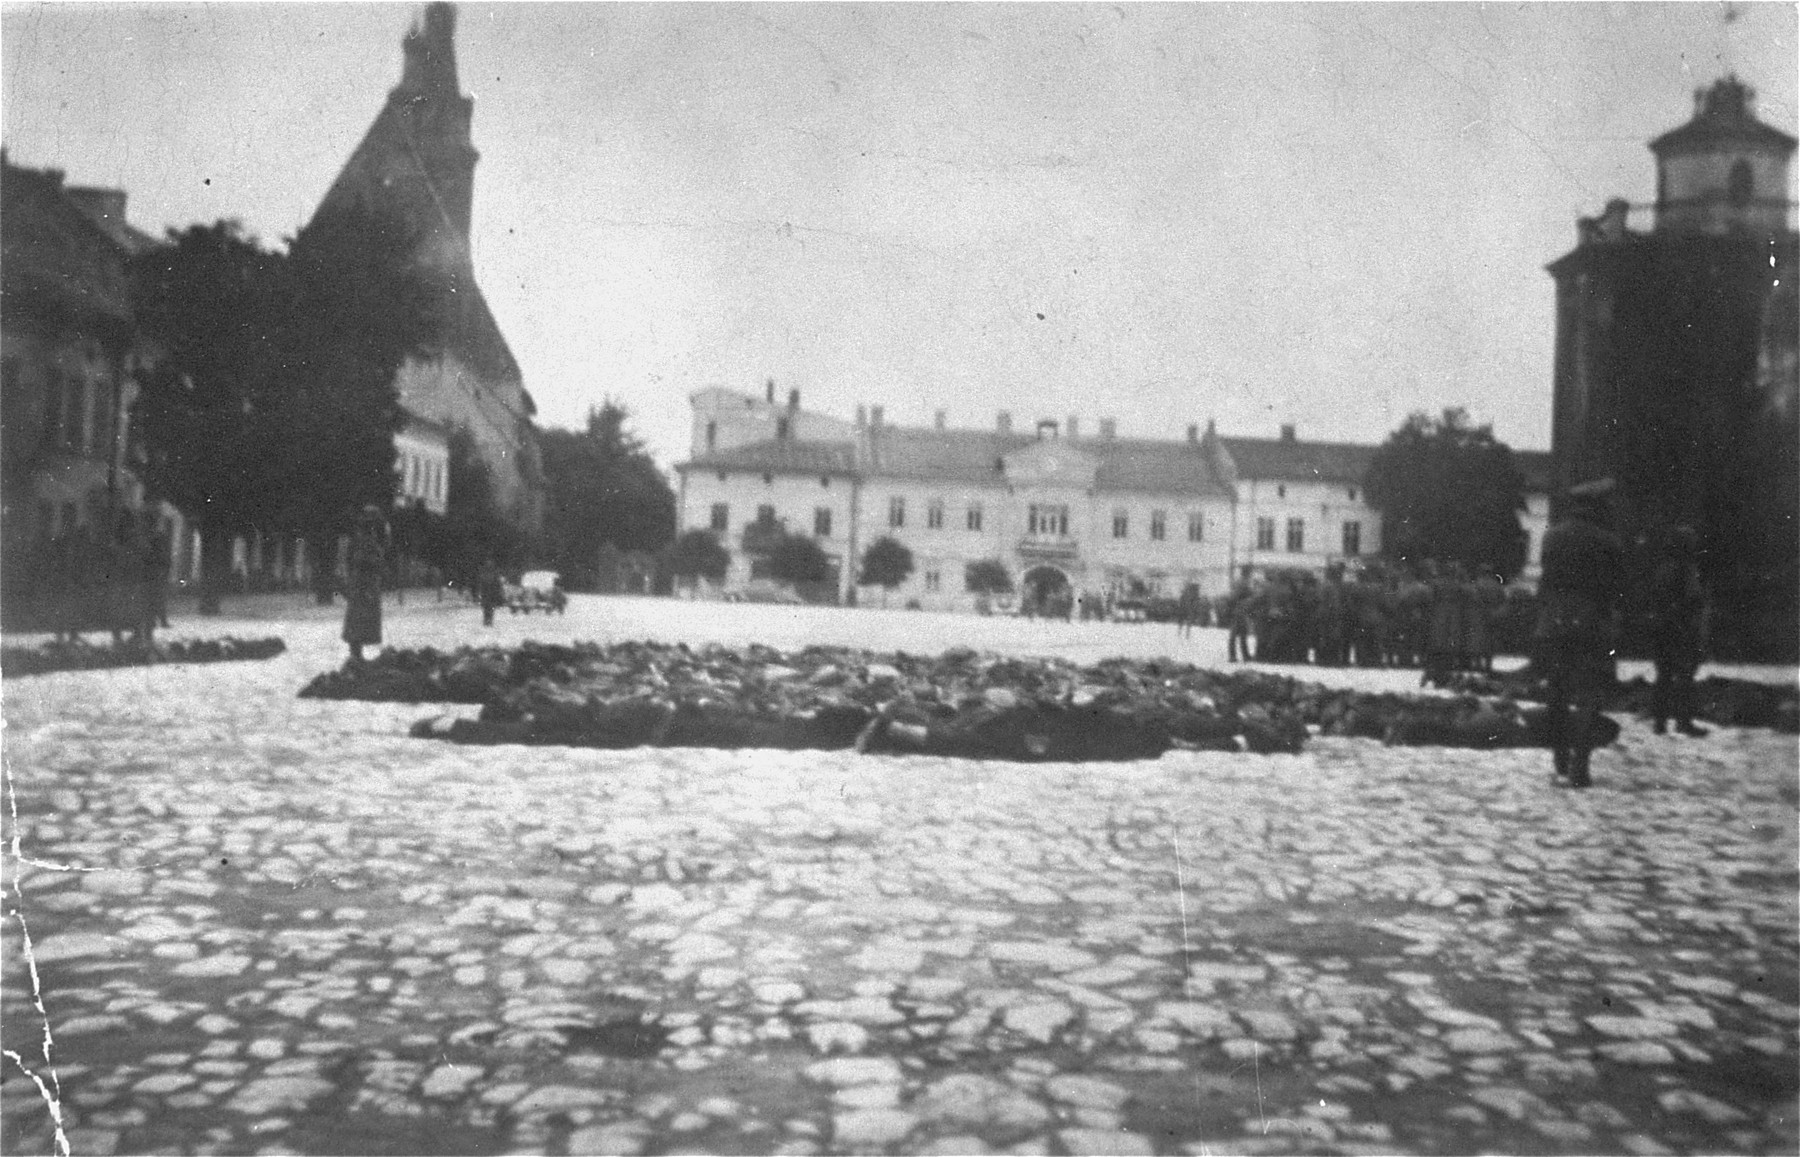 German police stand guard over Jewish hostages assembled on the old market square of Olkusz during a reprisal action.